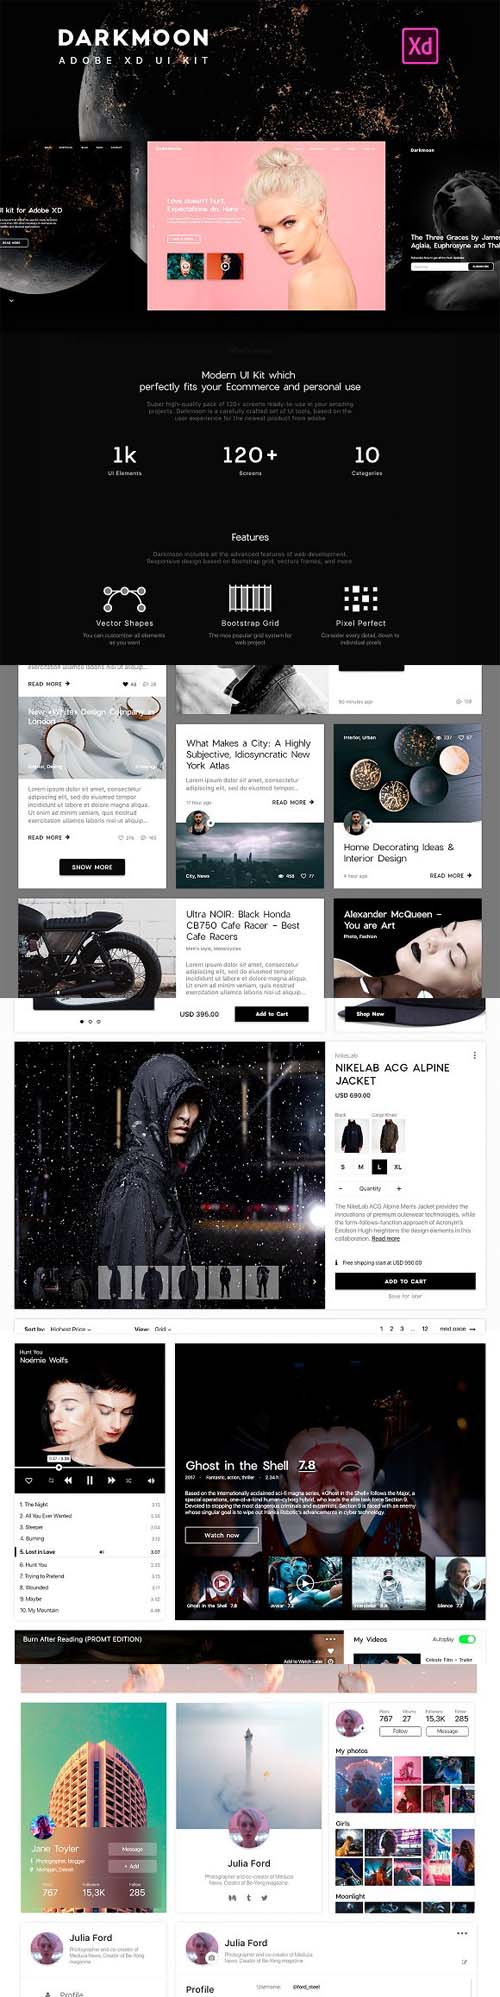 Dark moon UI Kit. UX/UI Design 1311499